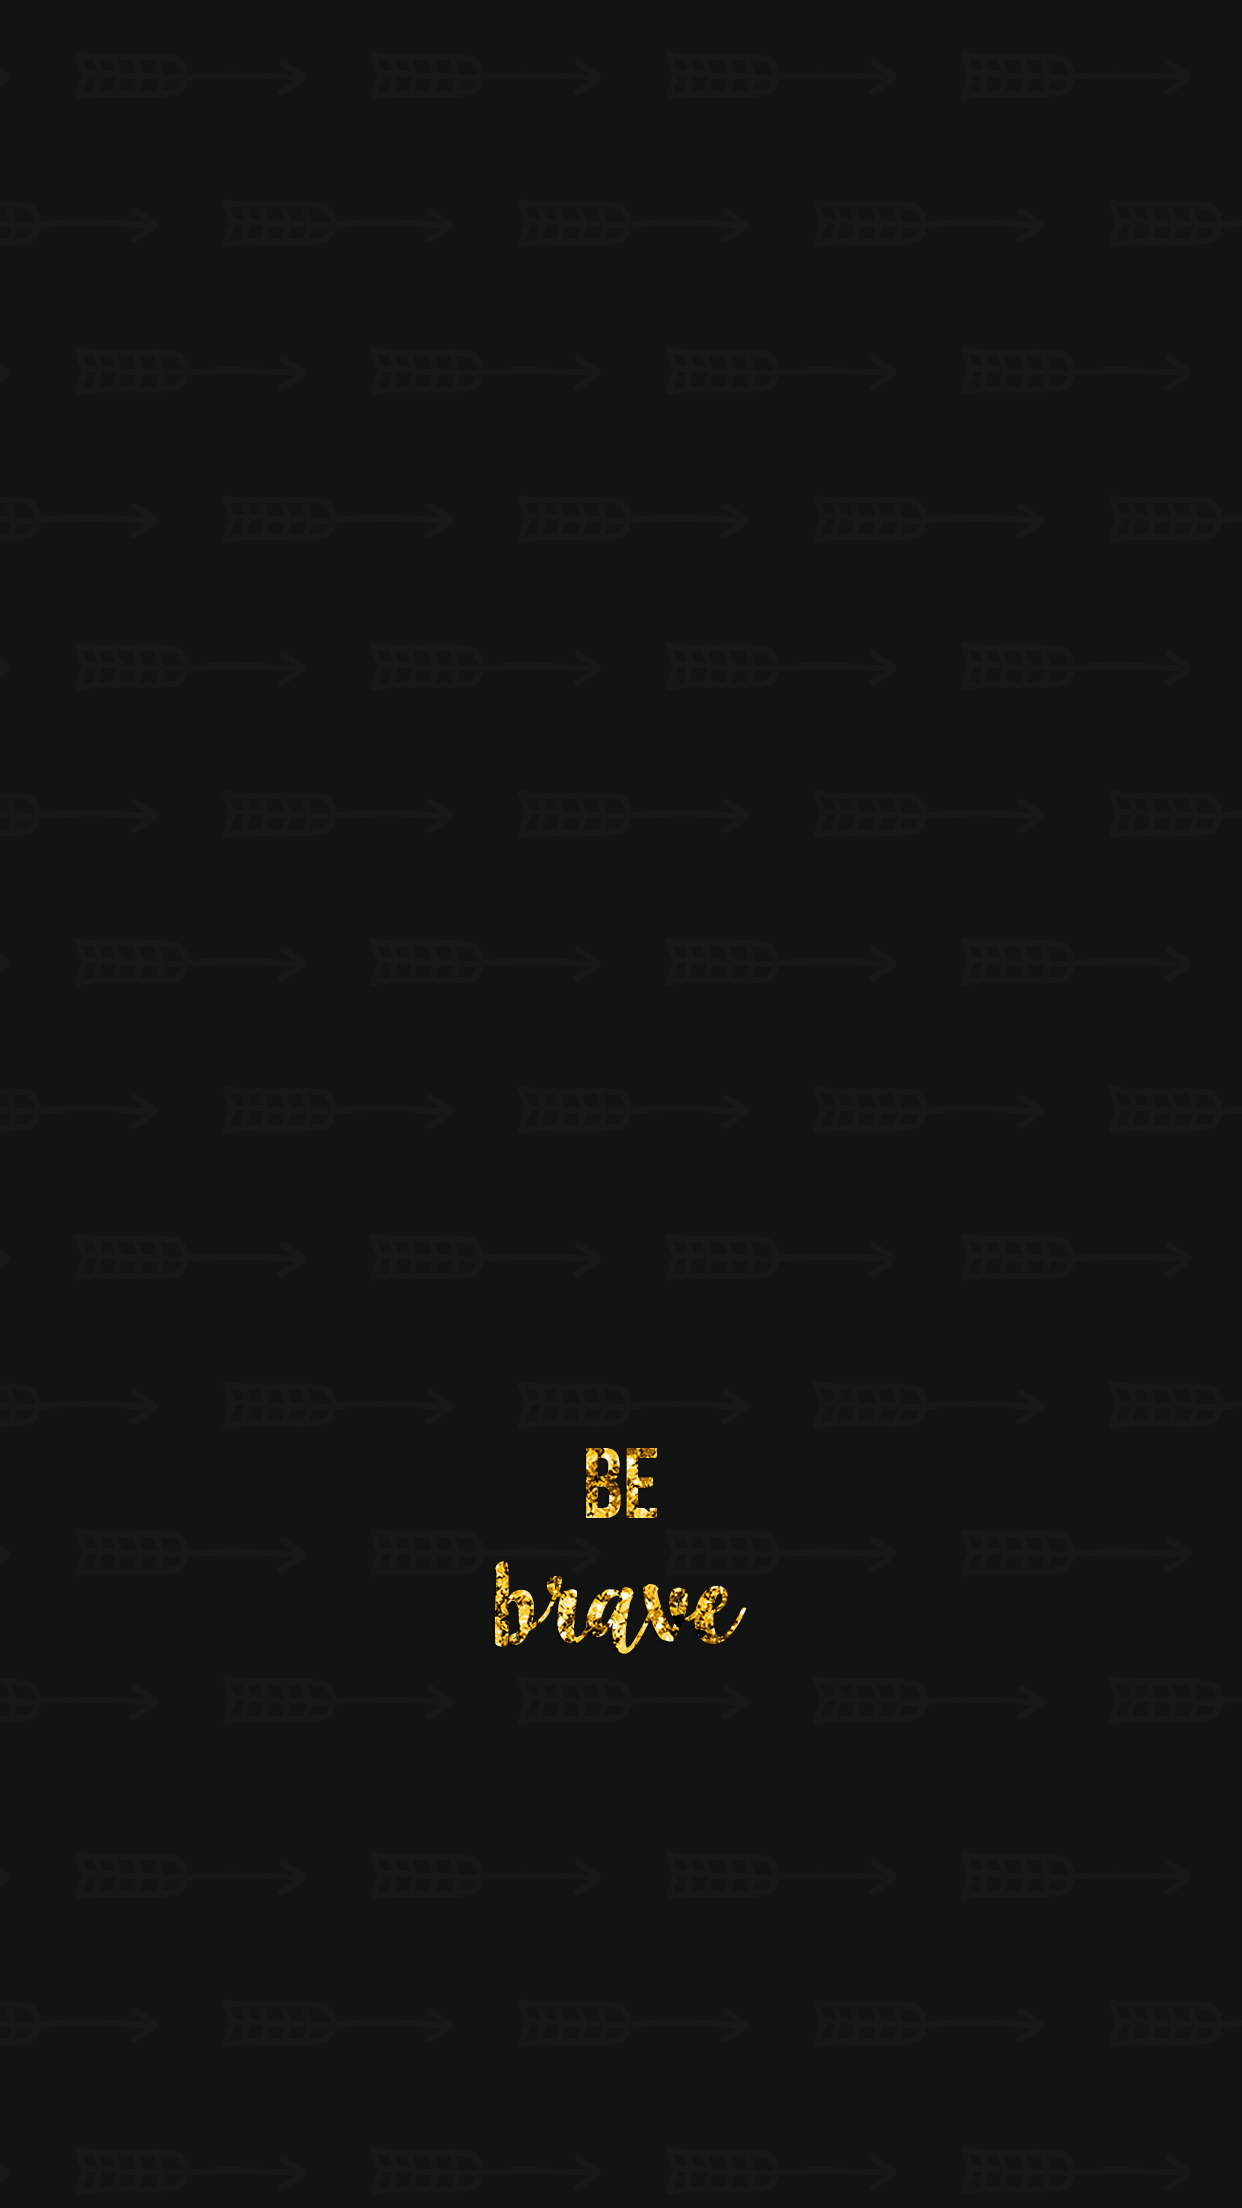 Wallpaper Background Hd Iphone Android Black Gold Glitter Quote Motivation In Gold Wallpaper Iphone Black Glitter Wallpapers Iphone Wallpaper Glitter